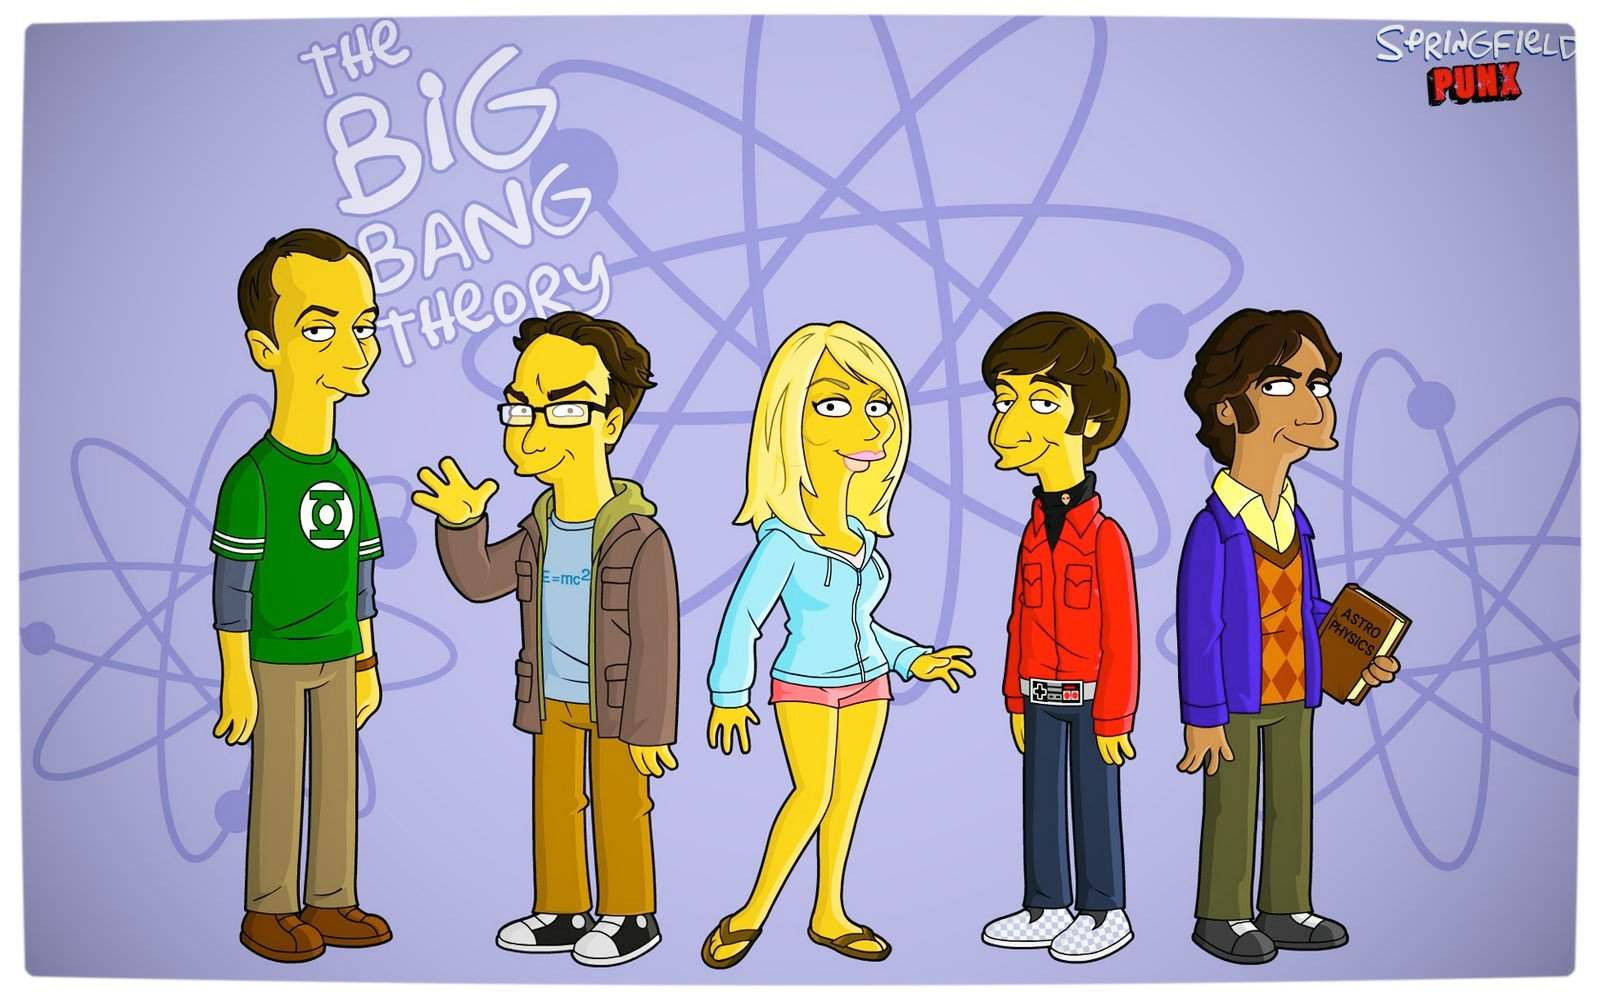 Vamers Humour - The Big Bang Theory - The Simpsons Mash-Up - Springfield Punx Wallpaper